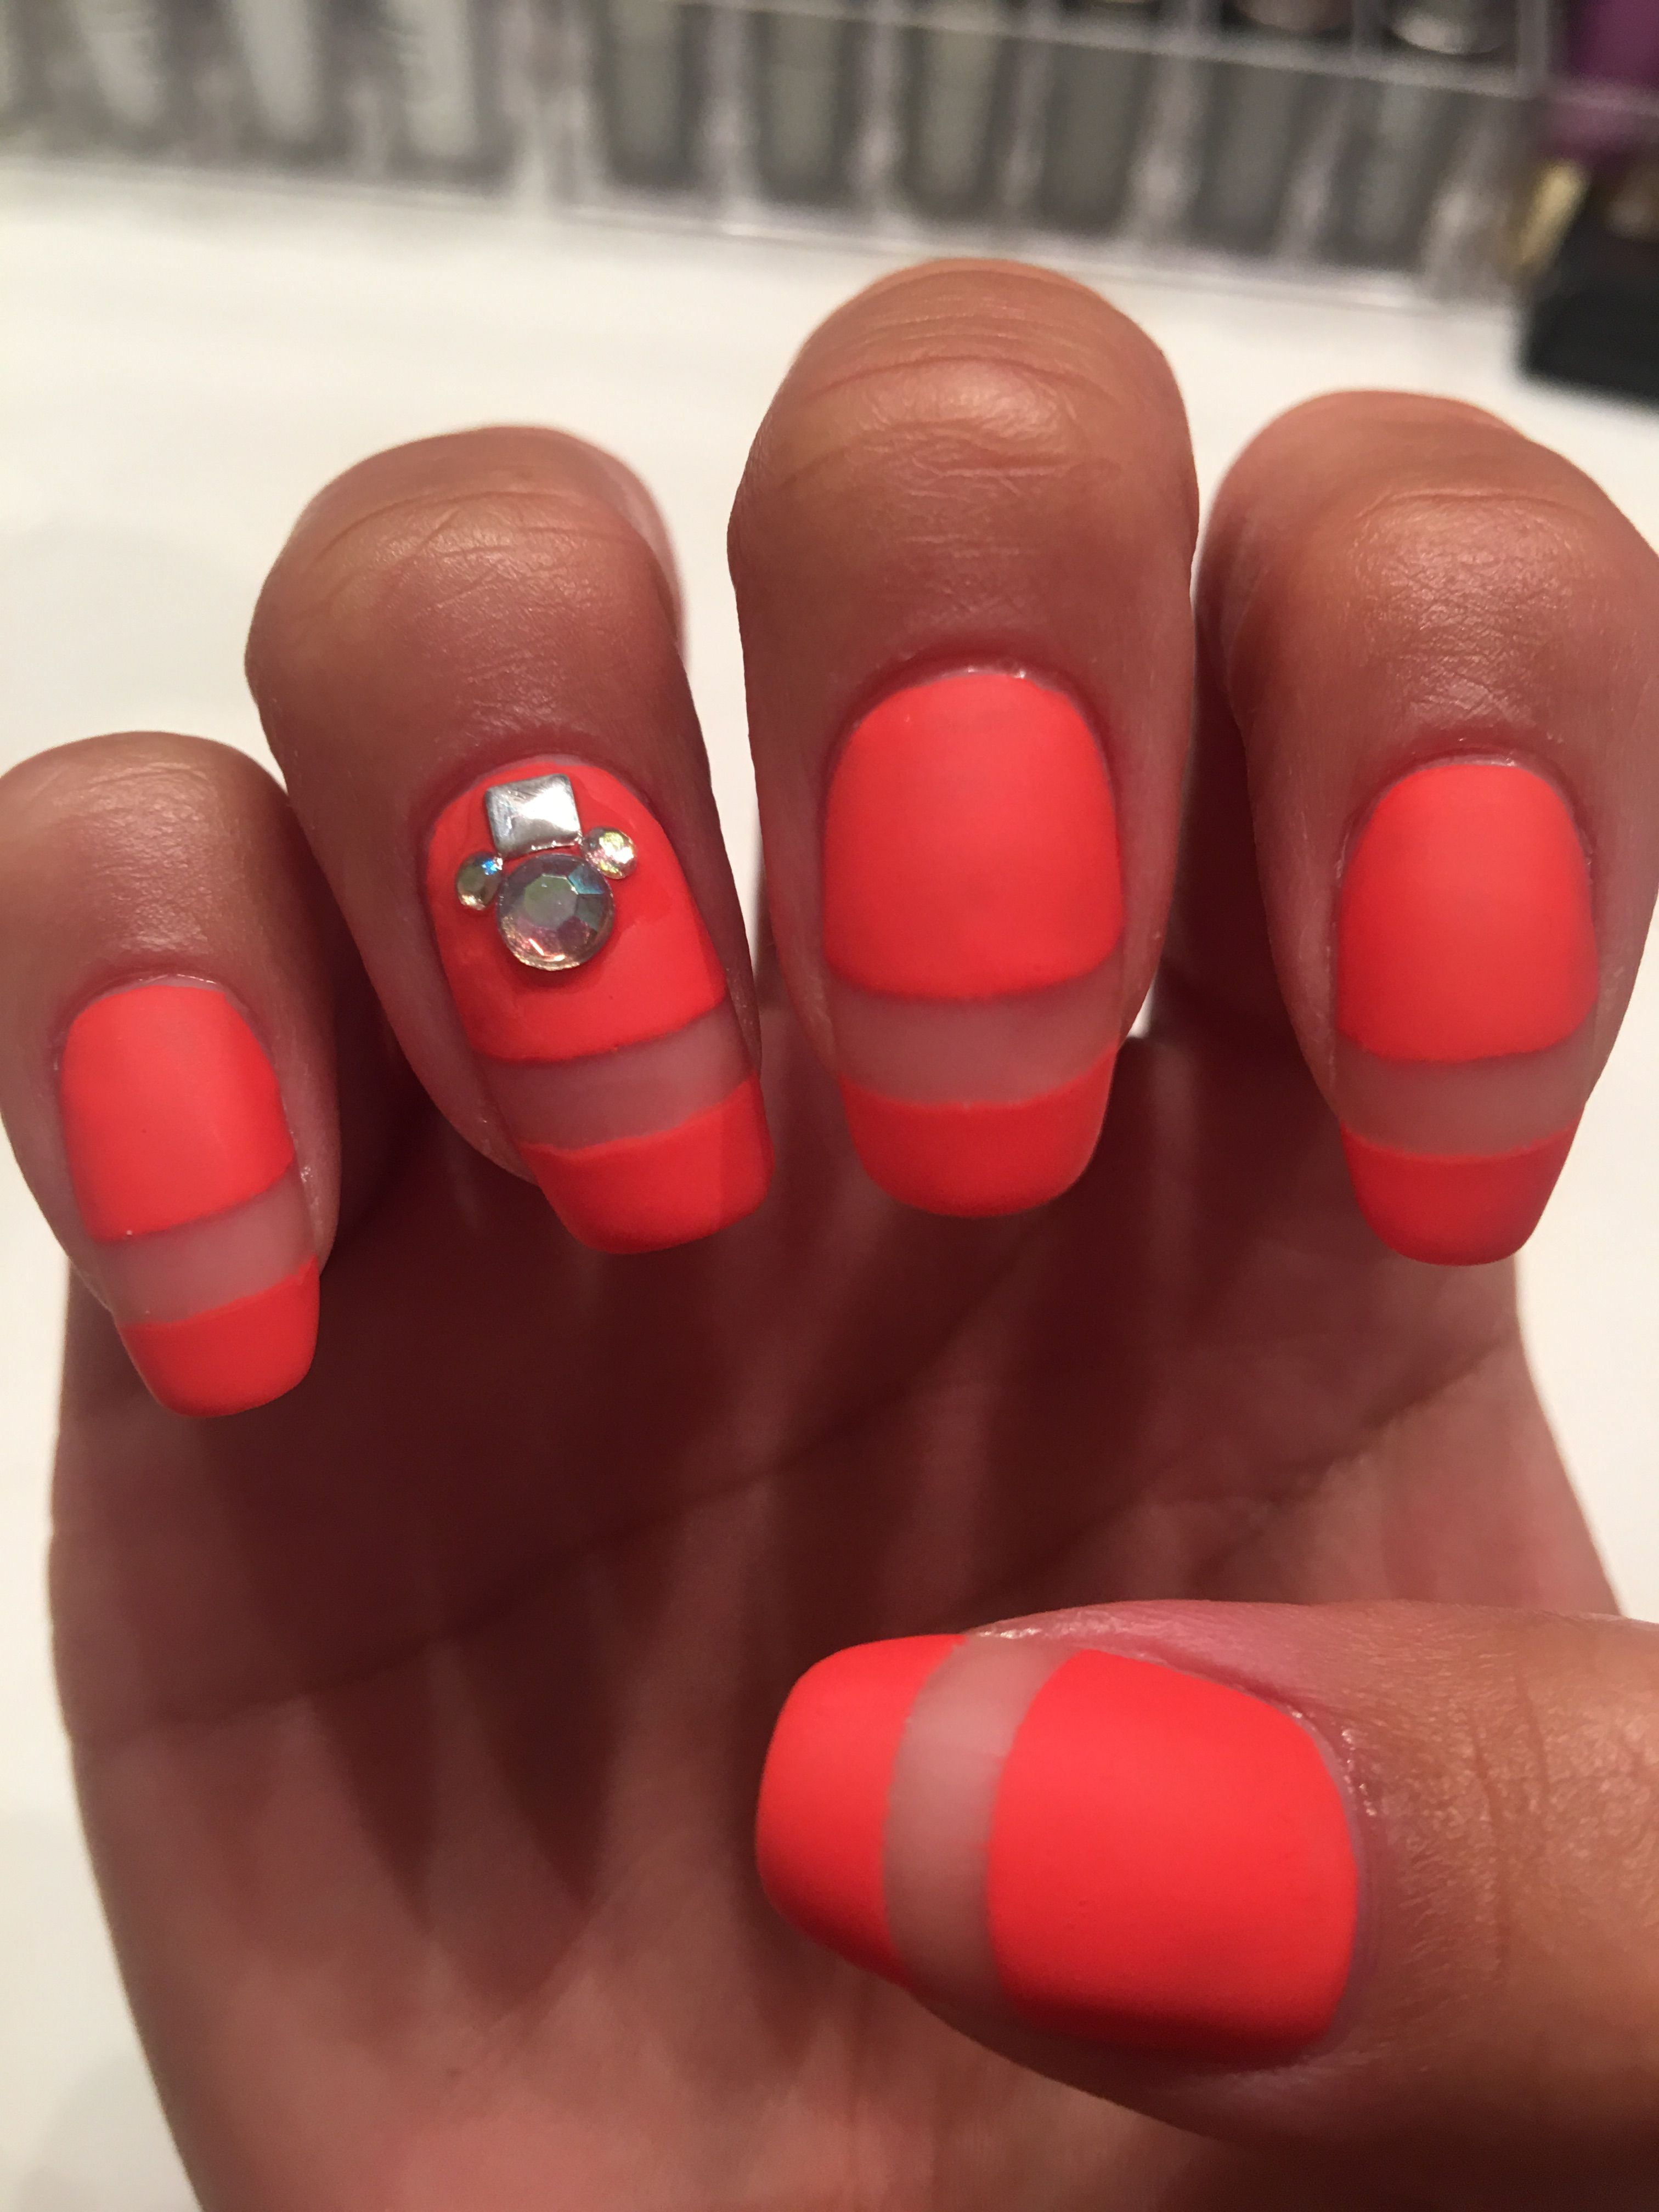 Unique French tip nails in the color Stunner by L.A. Colors ...